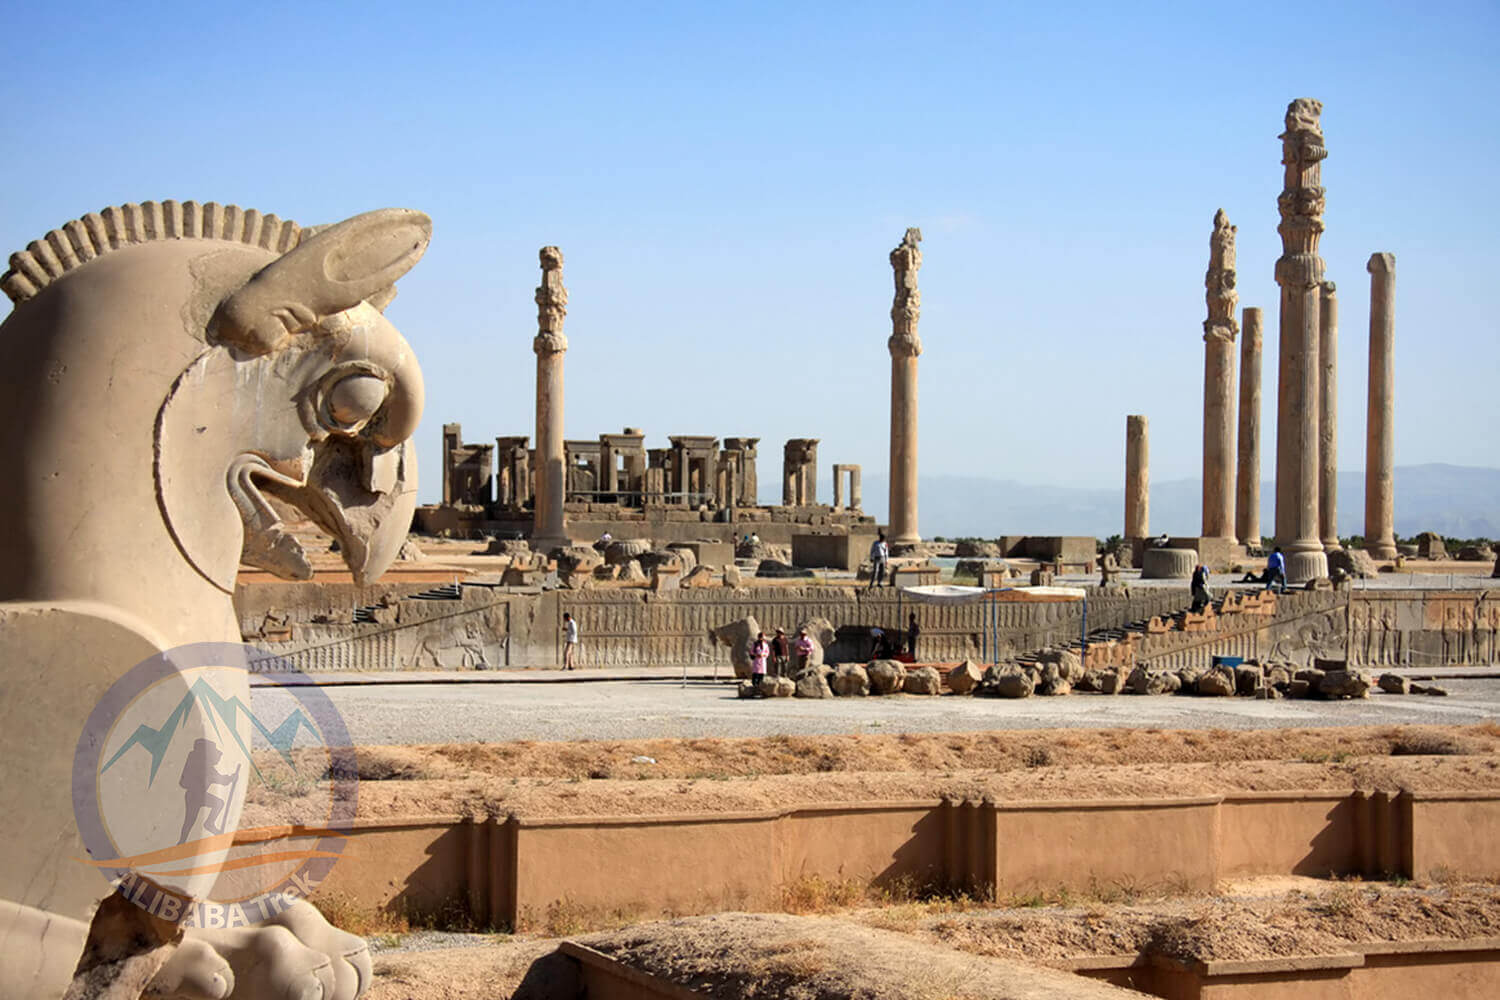 Alibabatrek iran deserts and culture tour Persepolis